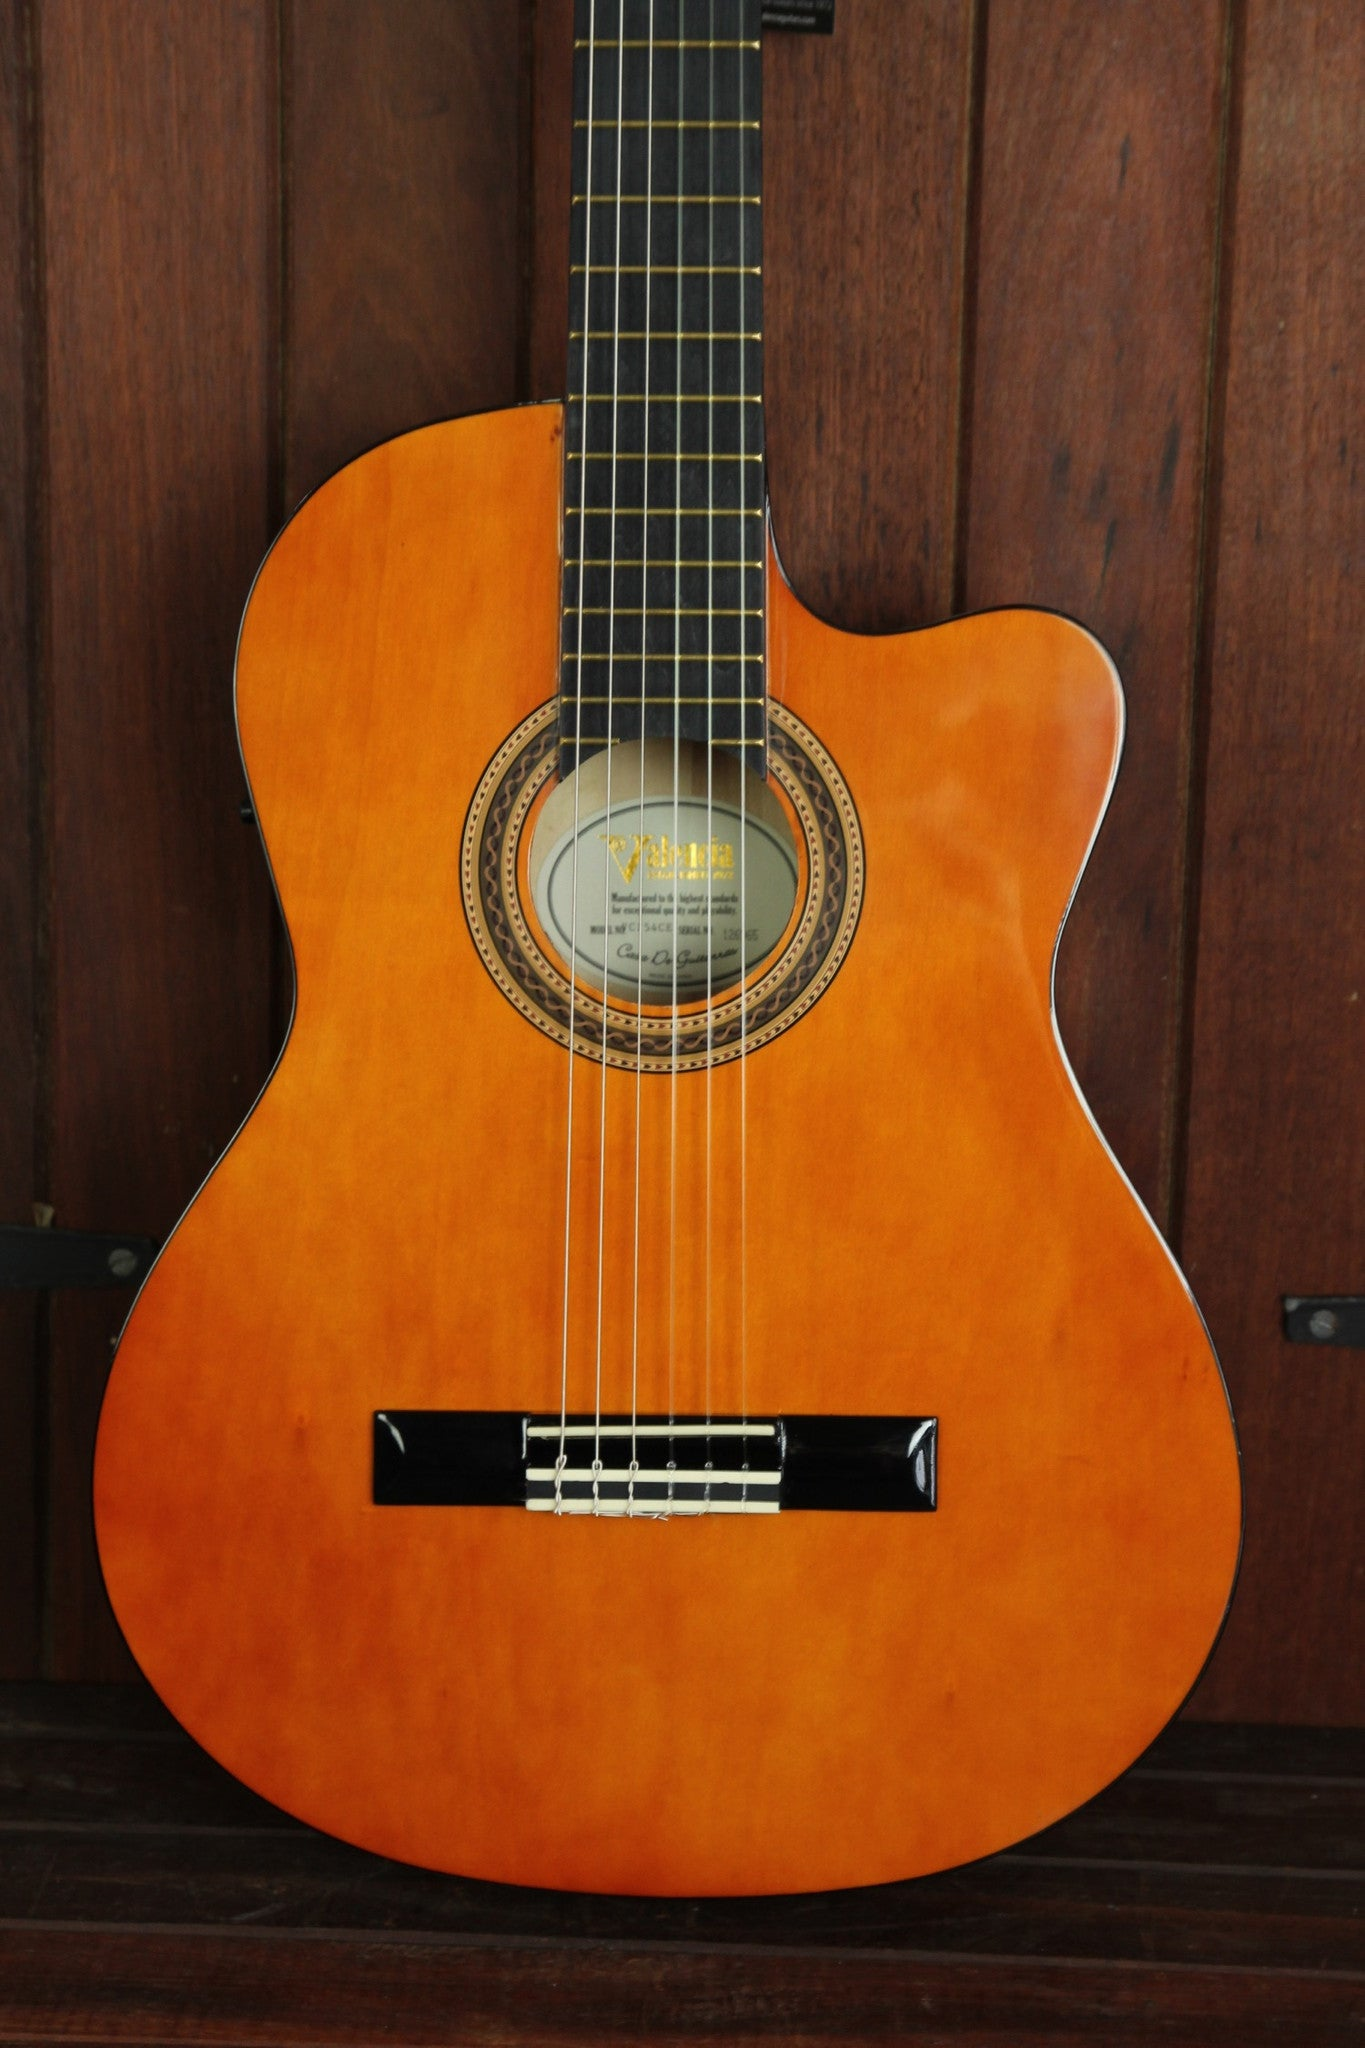 Valencia VC154CE Series Classical Nylon Acoustic-Electric Guitar - The Rock Inn - 1